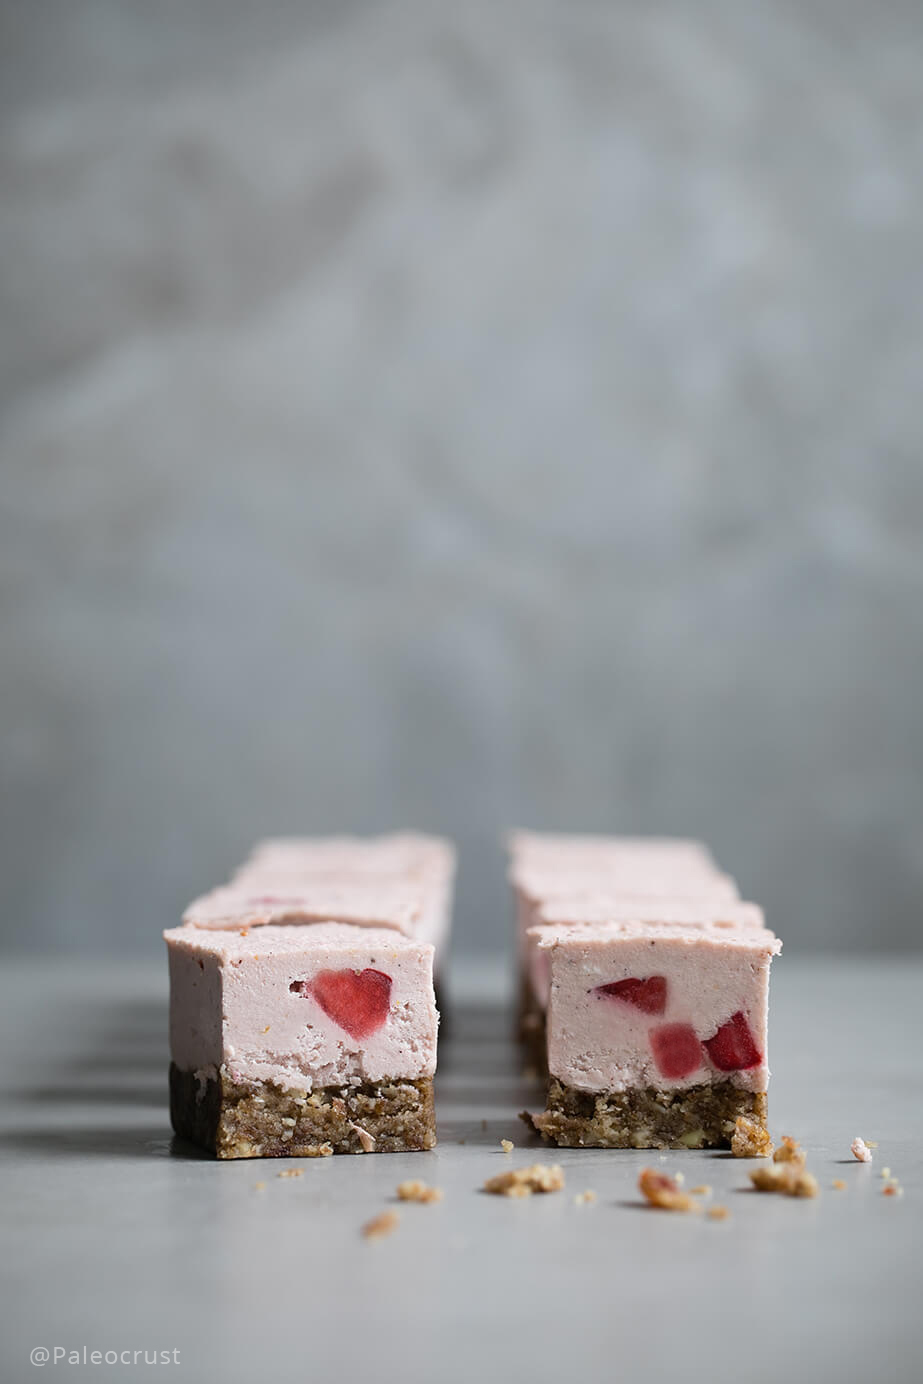 raw cake, sugar free cheesecake, Paleo cheesecake, Paleo Crust, Keto recipes, Paleo recipes, Sugar free recipes, Strawberry cheesecake, raw cheesecake